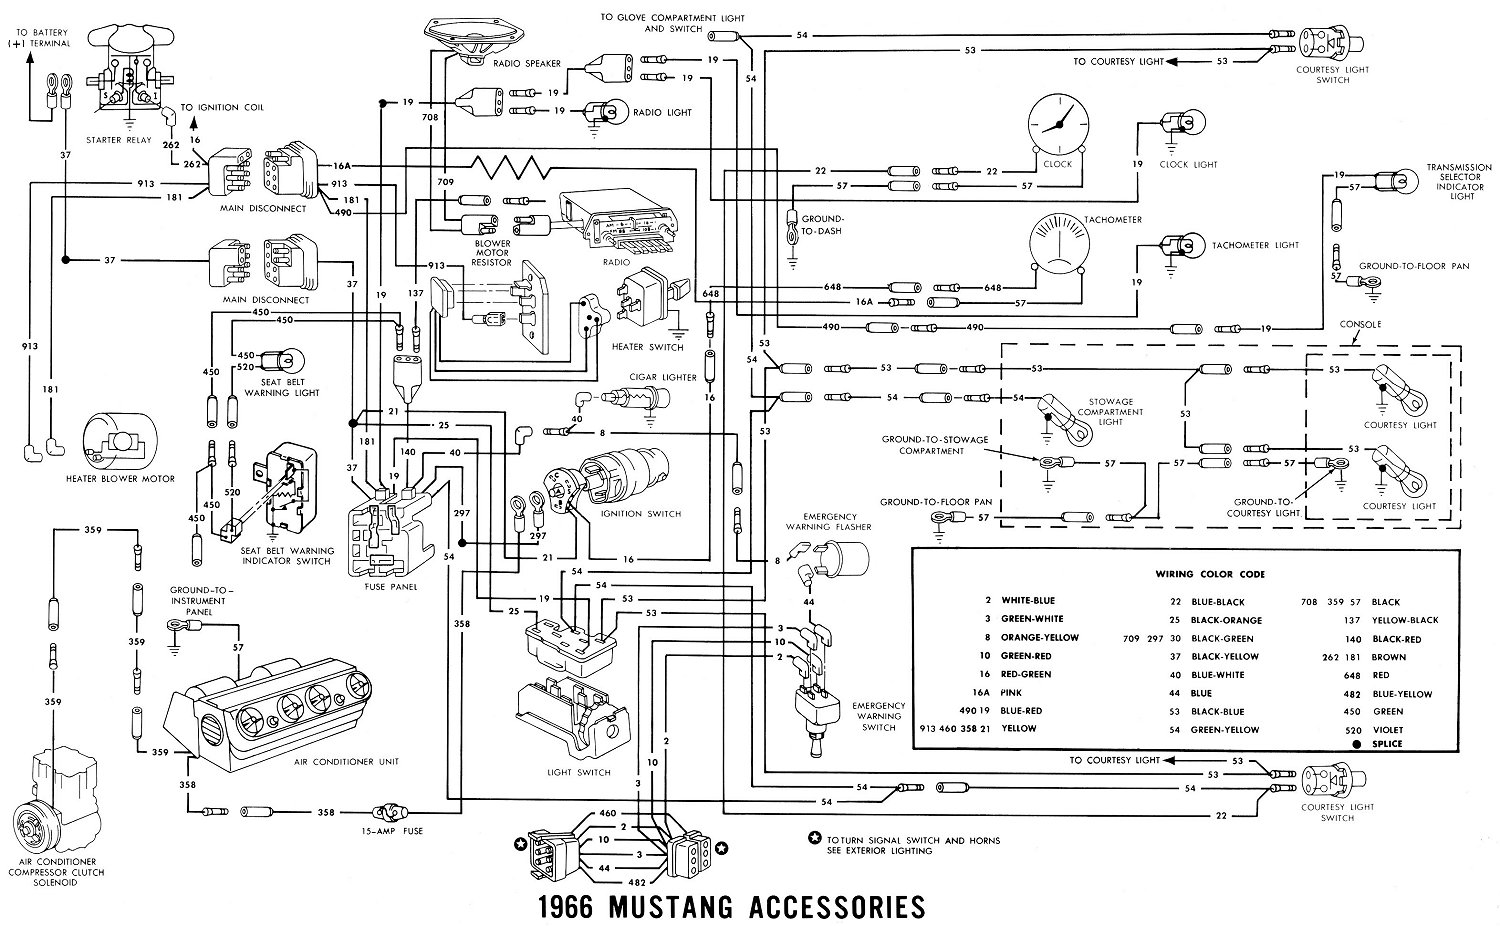 Diagram 70 Mustang Wiring Diagram Full Version Hd Quality Wiring Diagram Afh46iya Jftechnology It